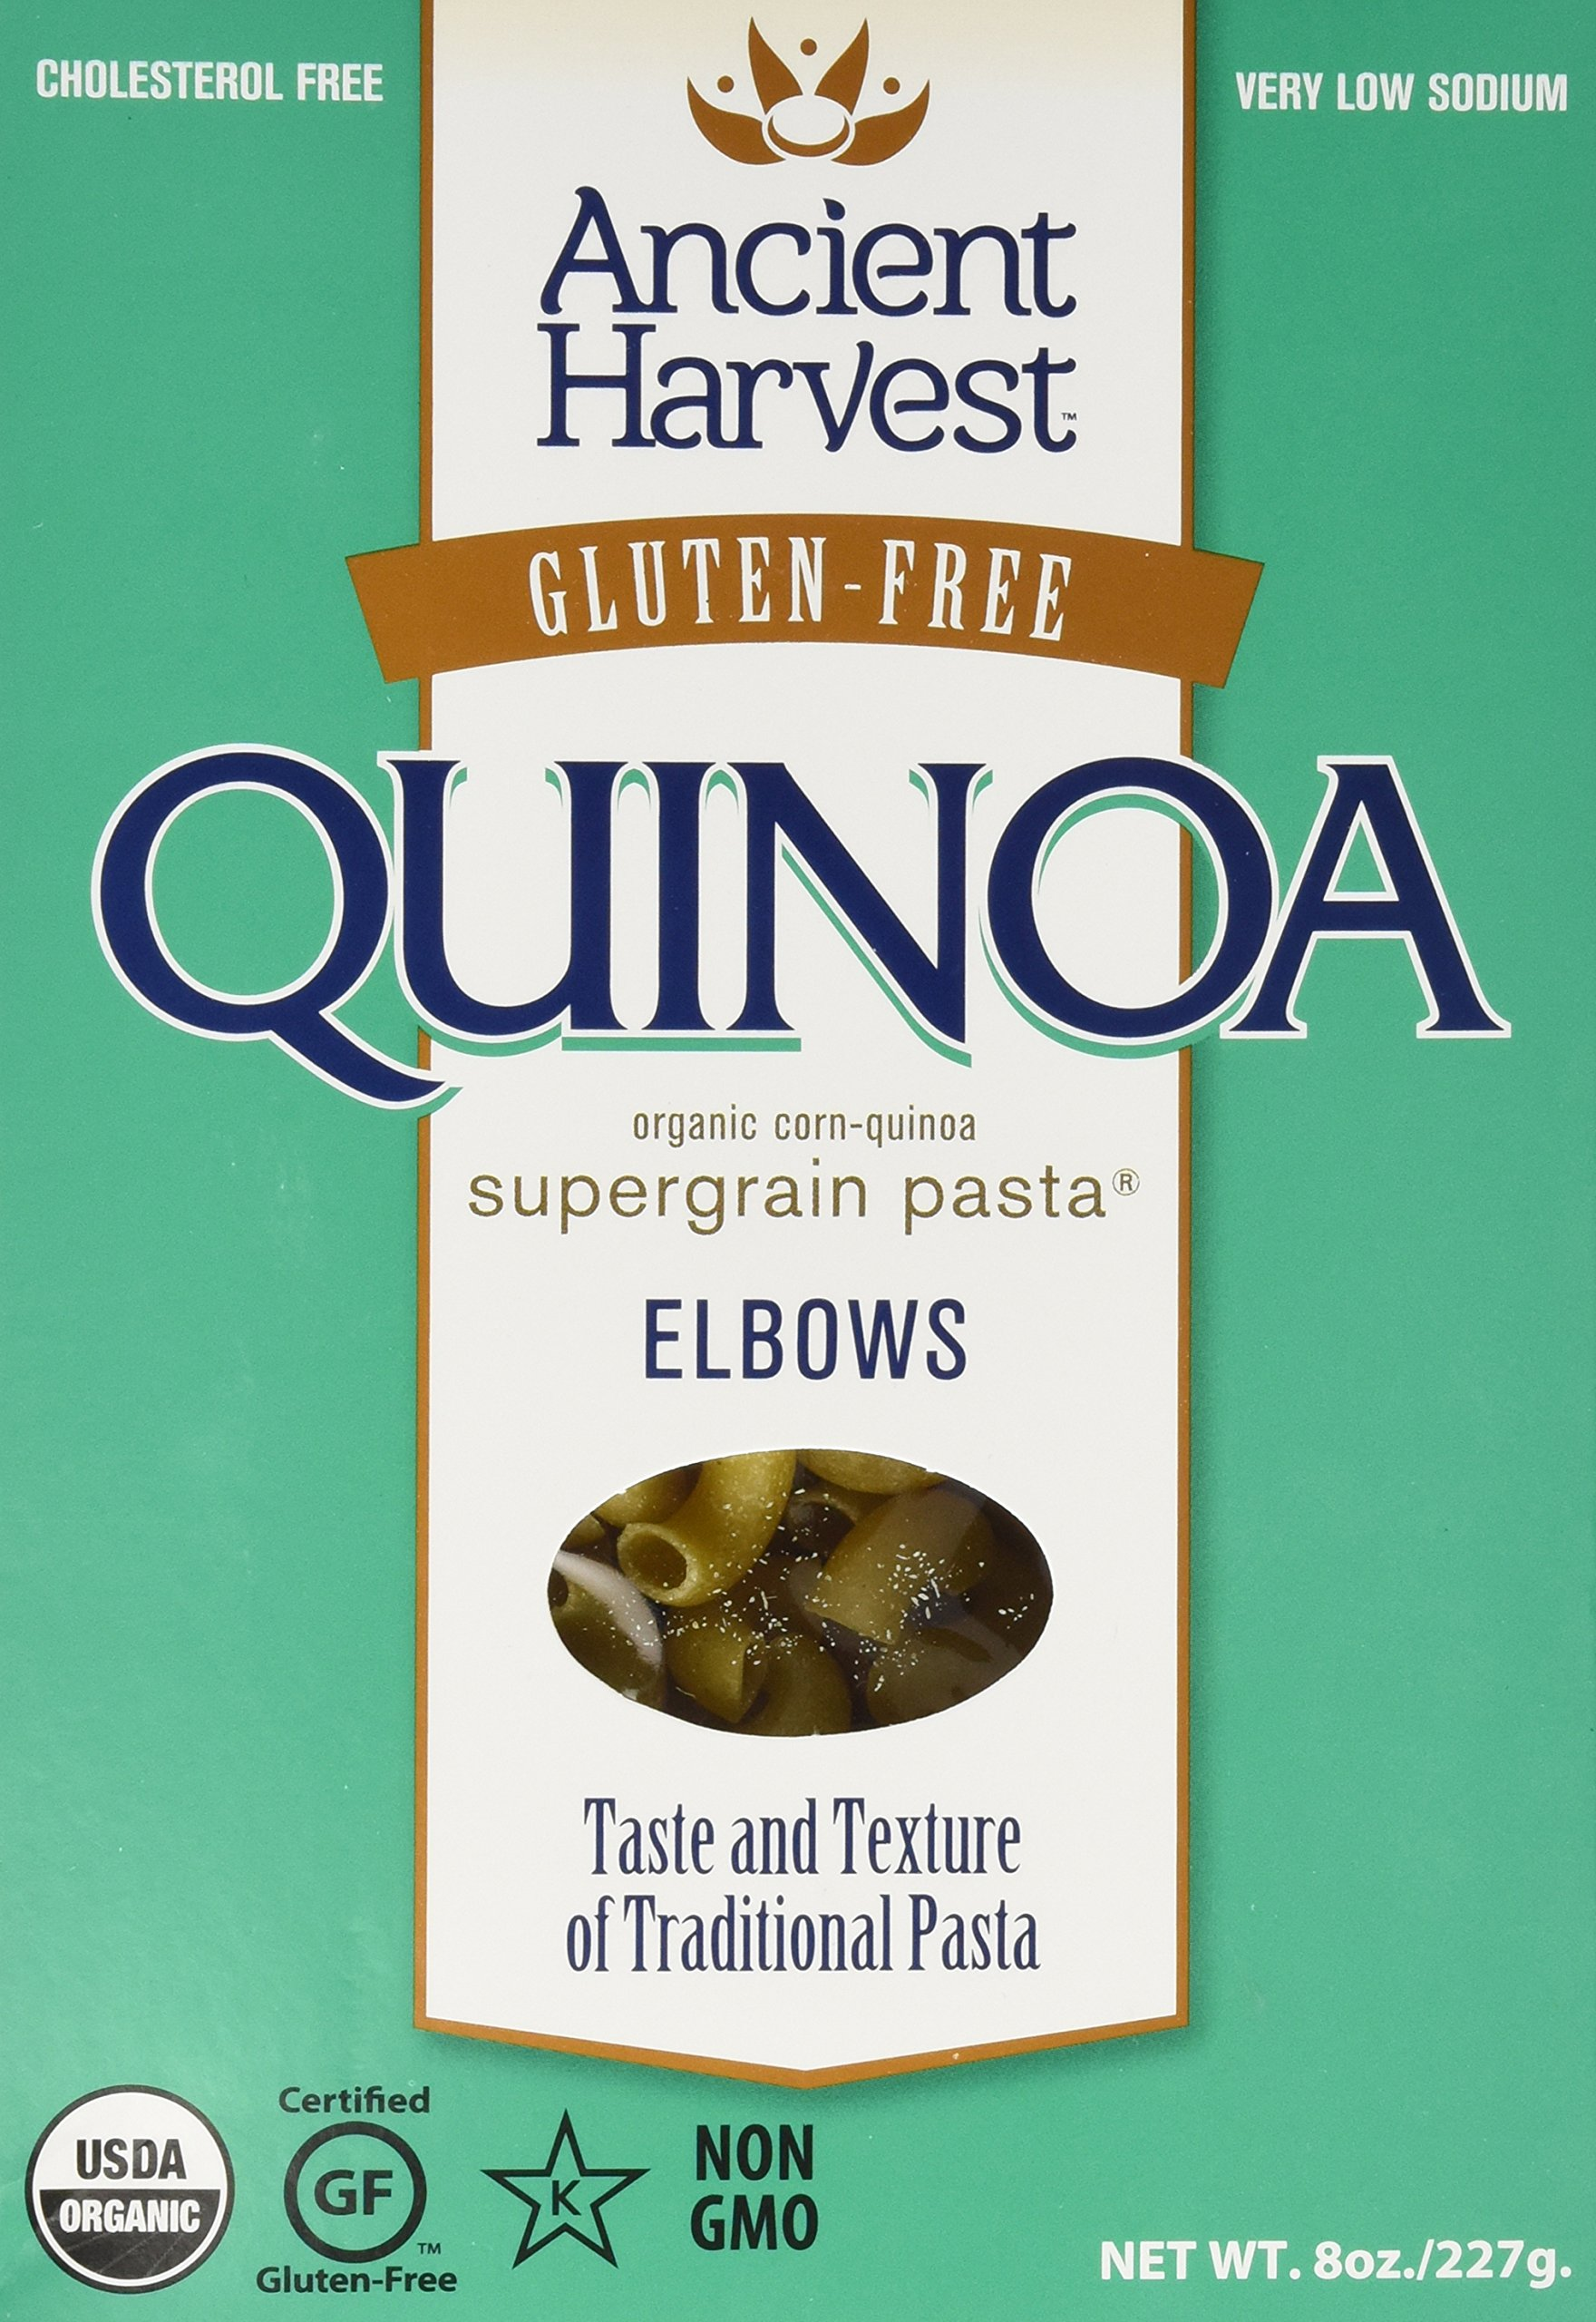 Ancient Harvest Quinoa Organic Elbow Pasta, Gluten-Free, 8 oz